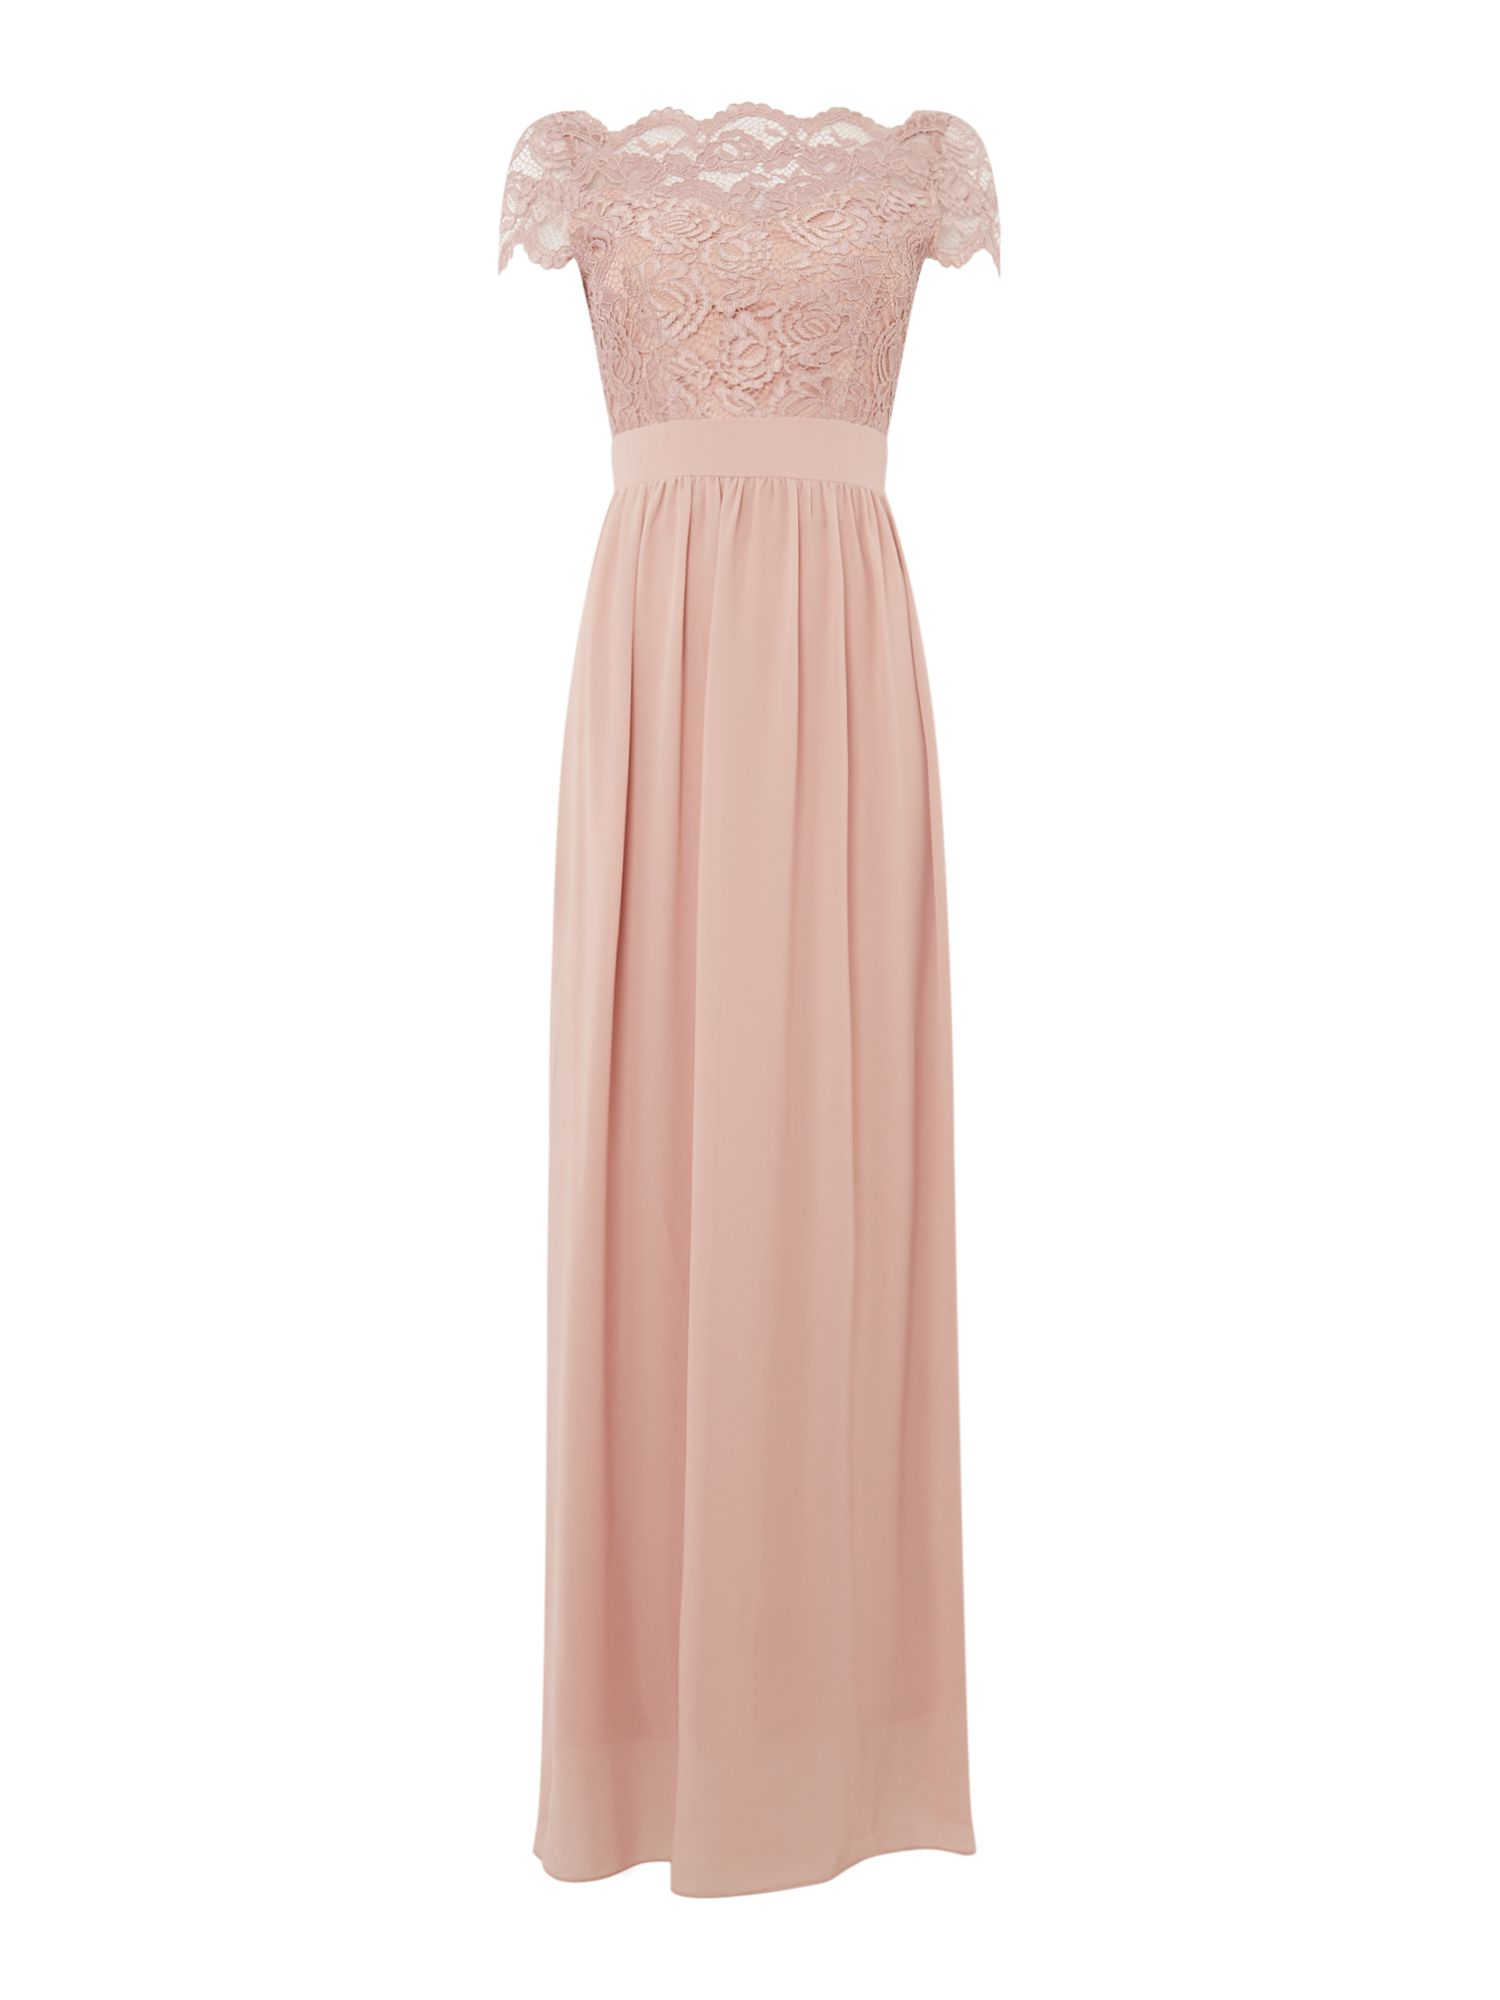 tfnc short sleeve maxi dress with lace top open back, Mauve